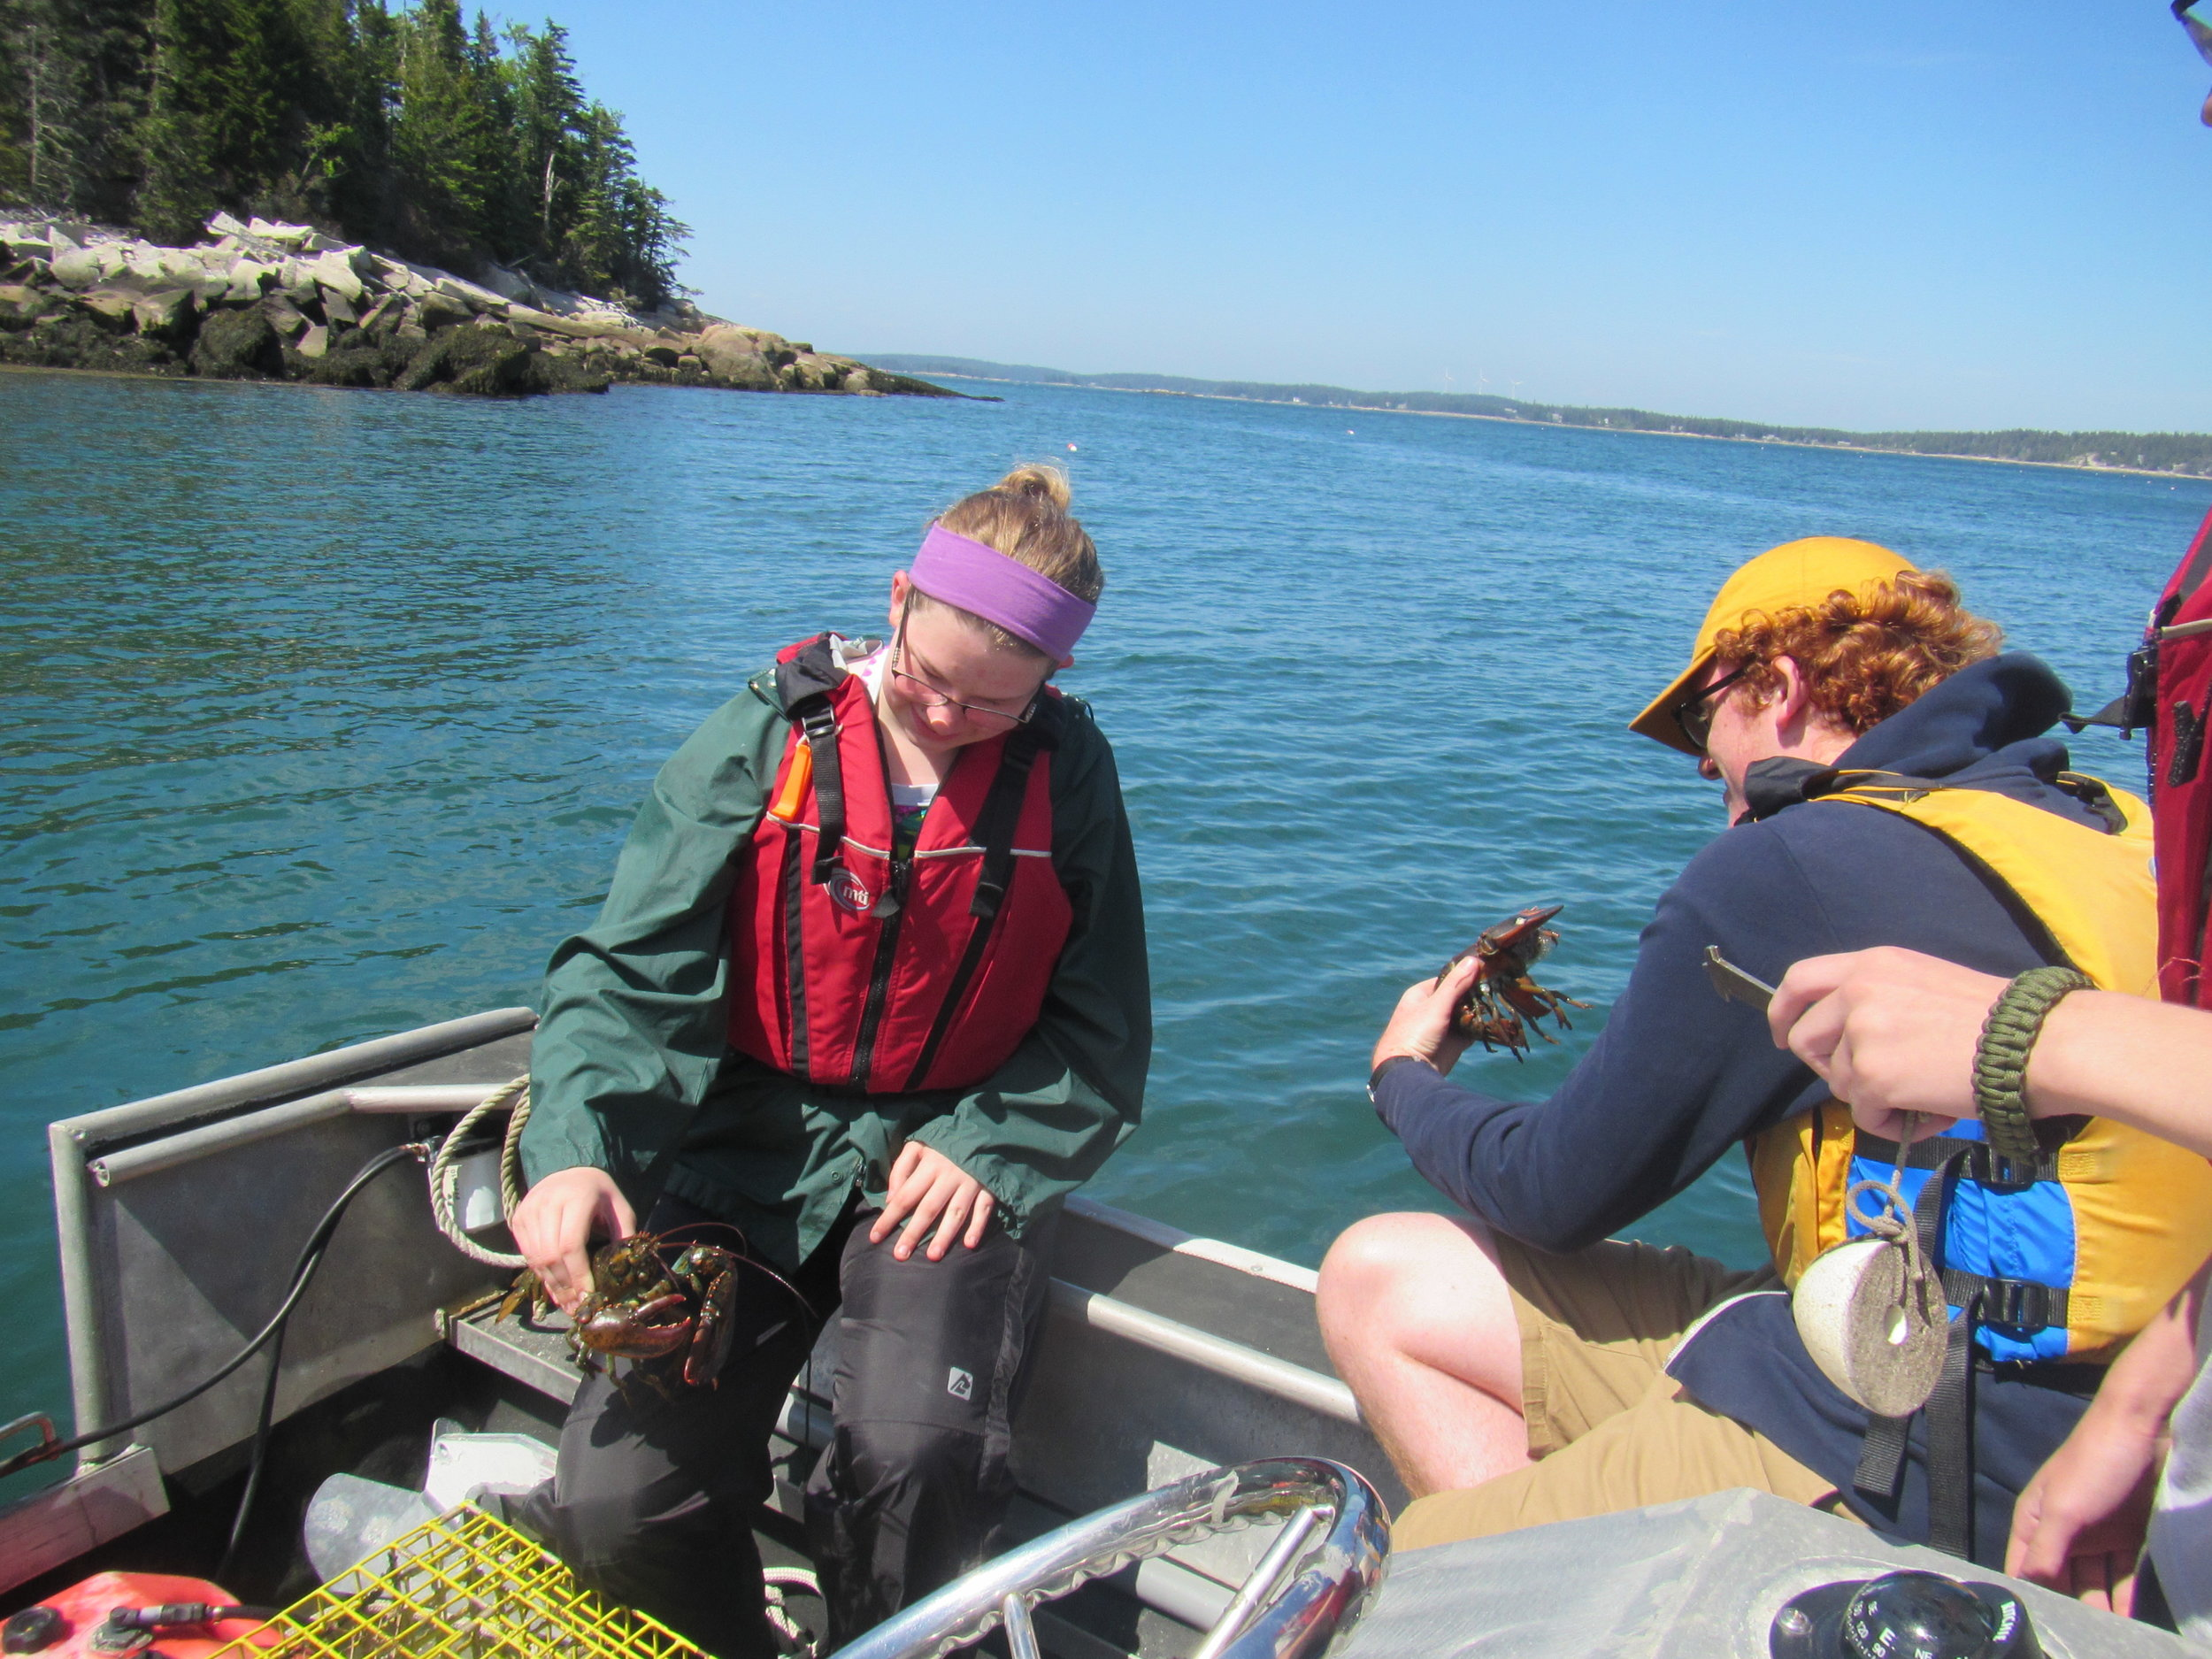 Students examine these lobsters and determine they are too small to keep.